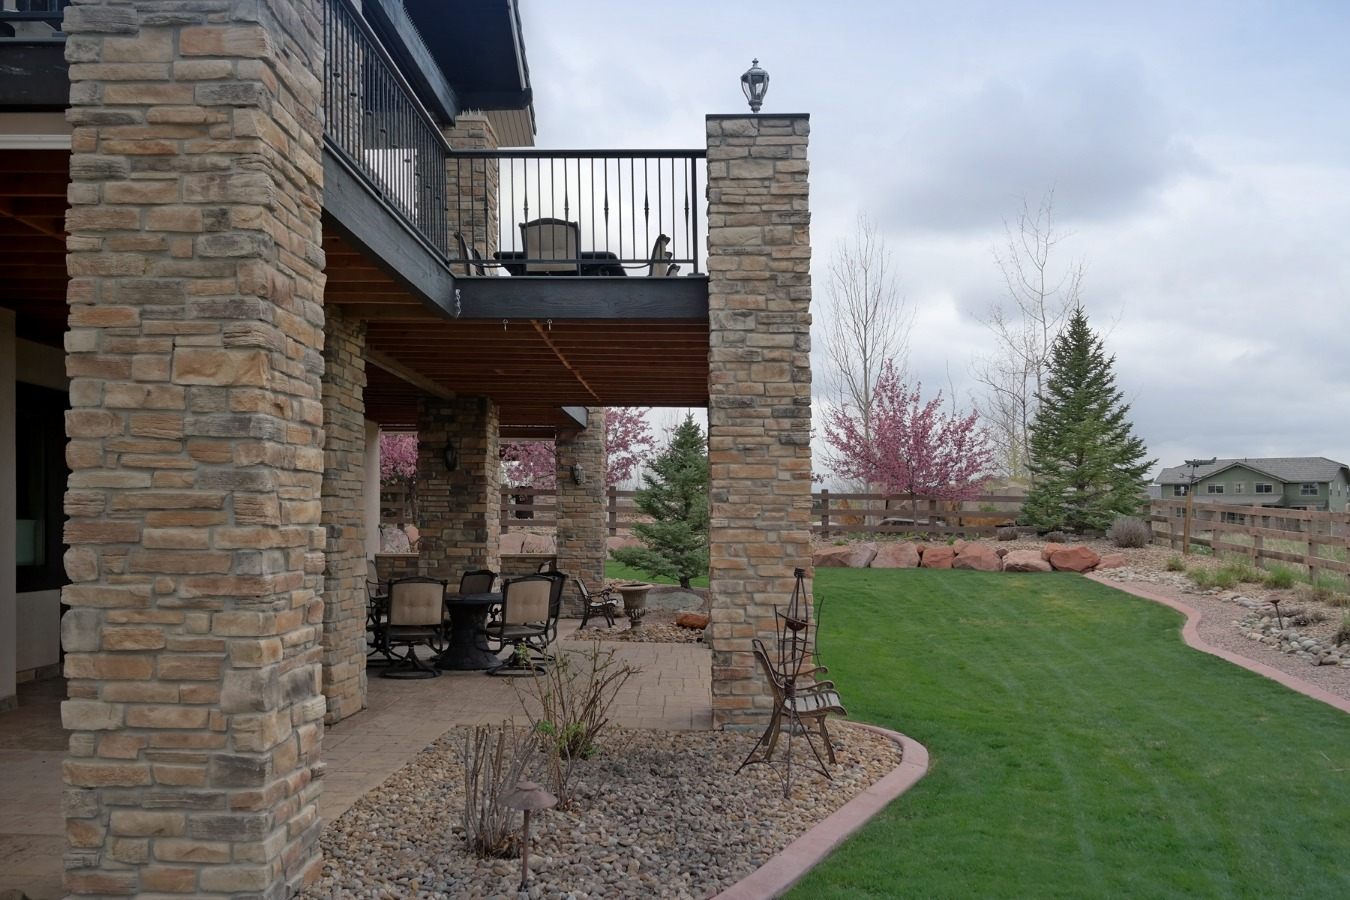 Magnificent Outdoor Spaces to Enjoy Yard & Views